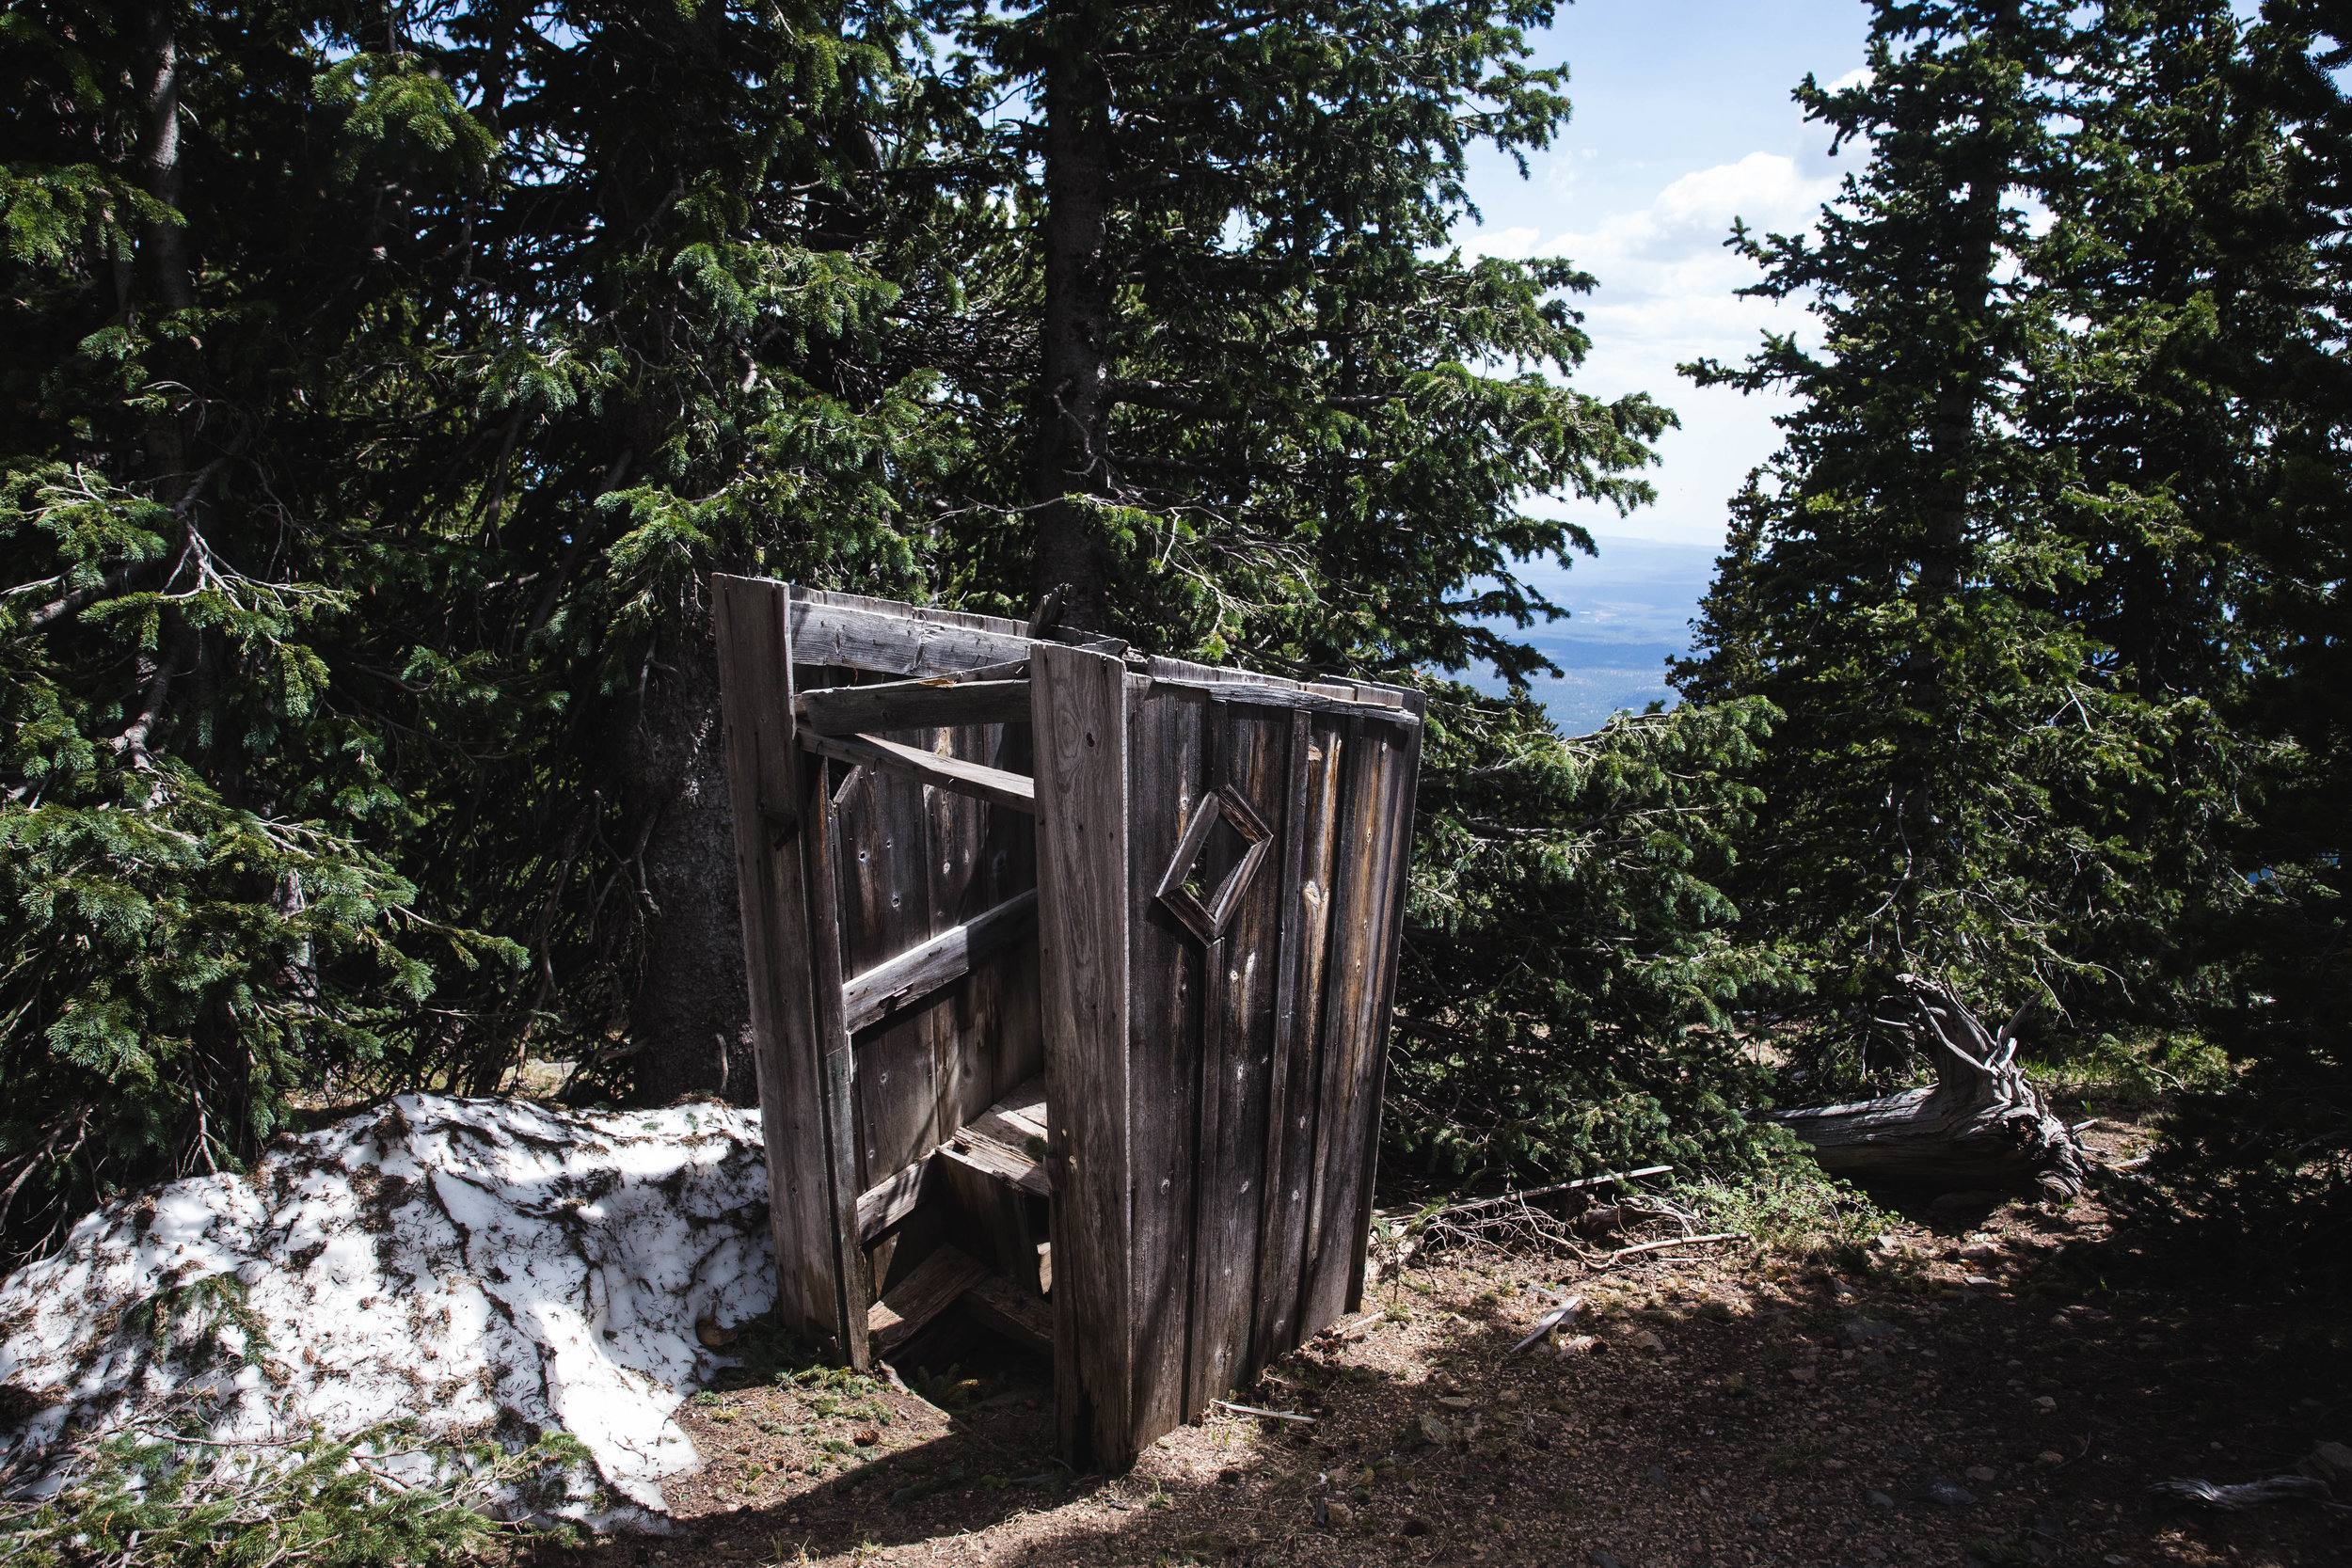 This outhouse is located on the saddle between Abineau and Freemont in the Kachina Peaks wilderness. This outhouse is out of commission, either someone laid one hell of a crap in there or the deep snow forced it off its foundation. In any case, I do not recommend using this guy, but the views were not bad. RATING: ★★☆☆☆